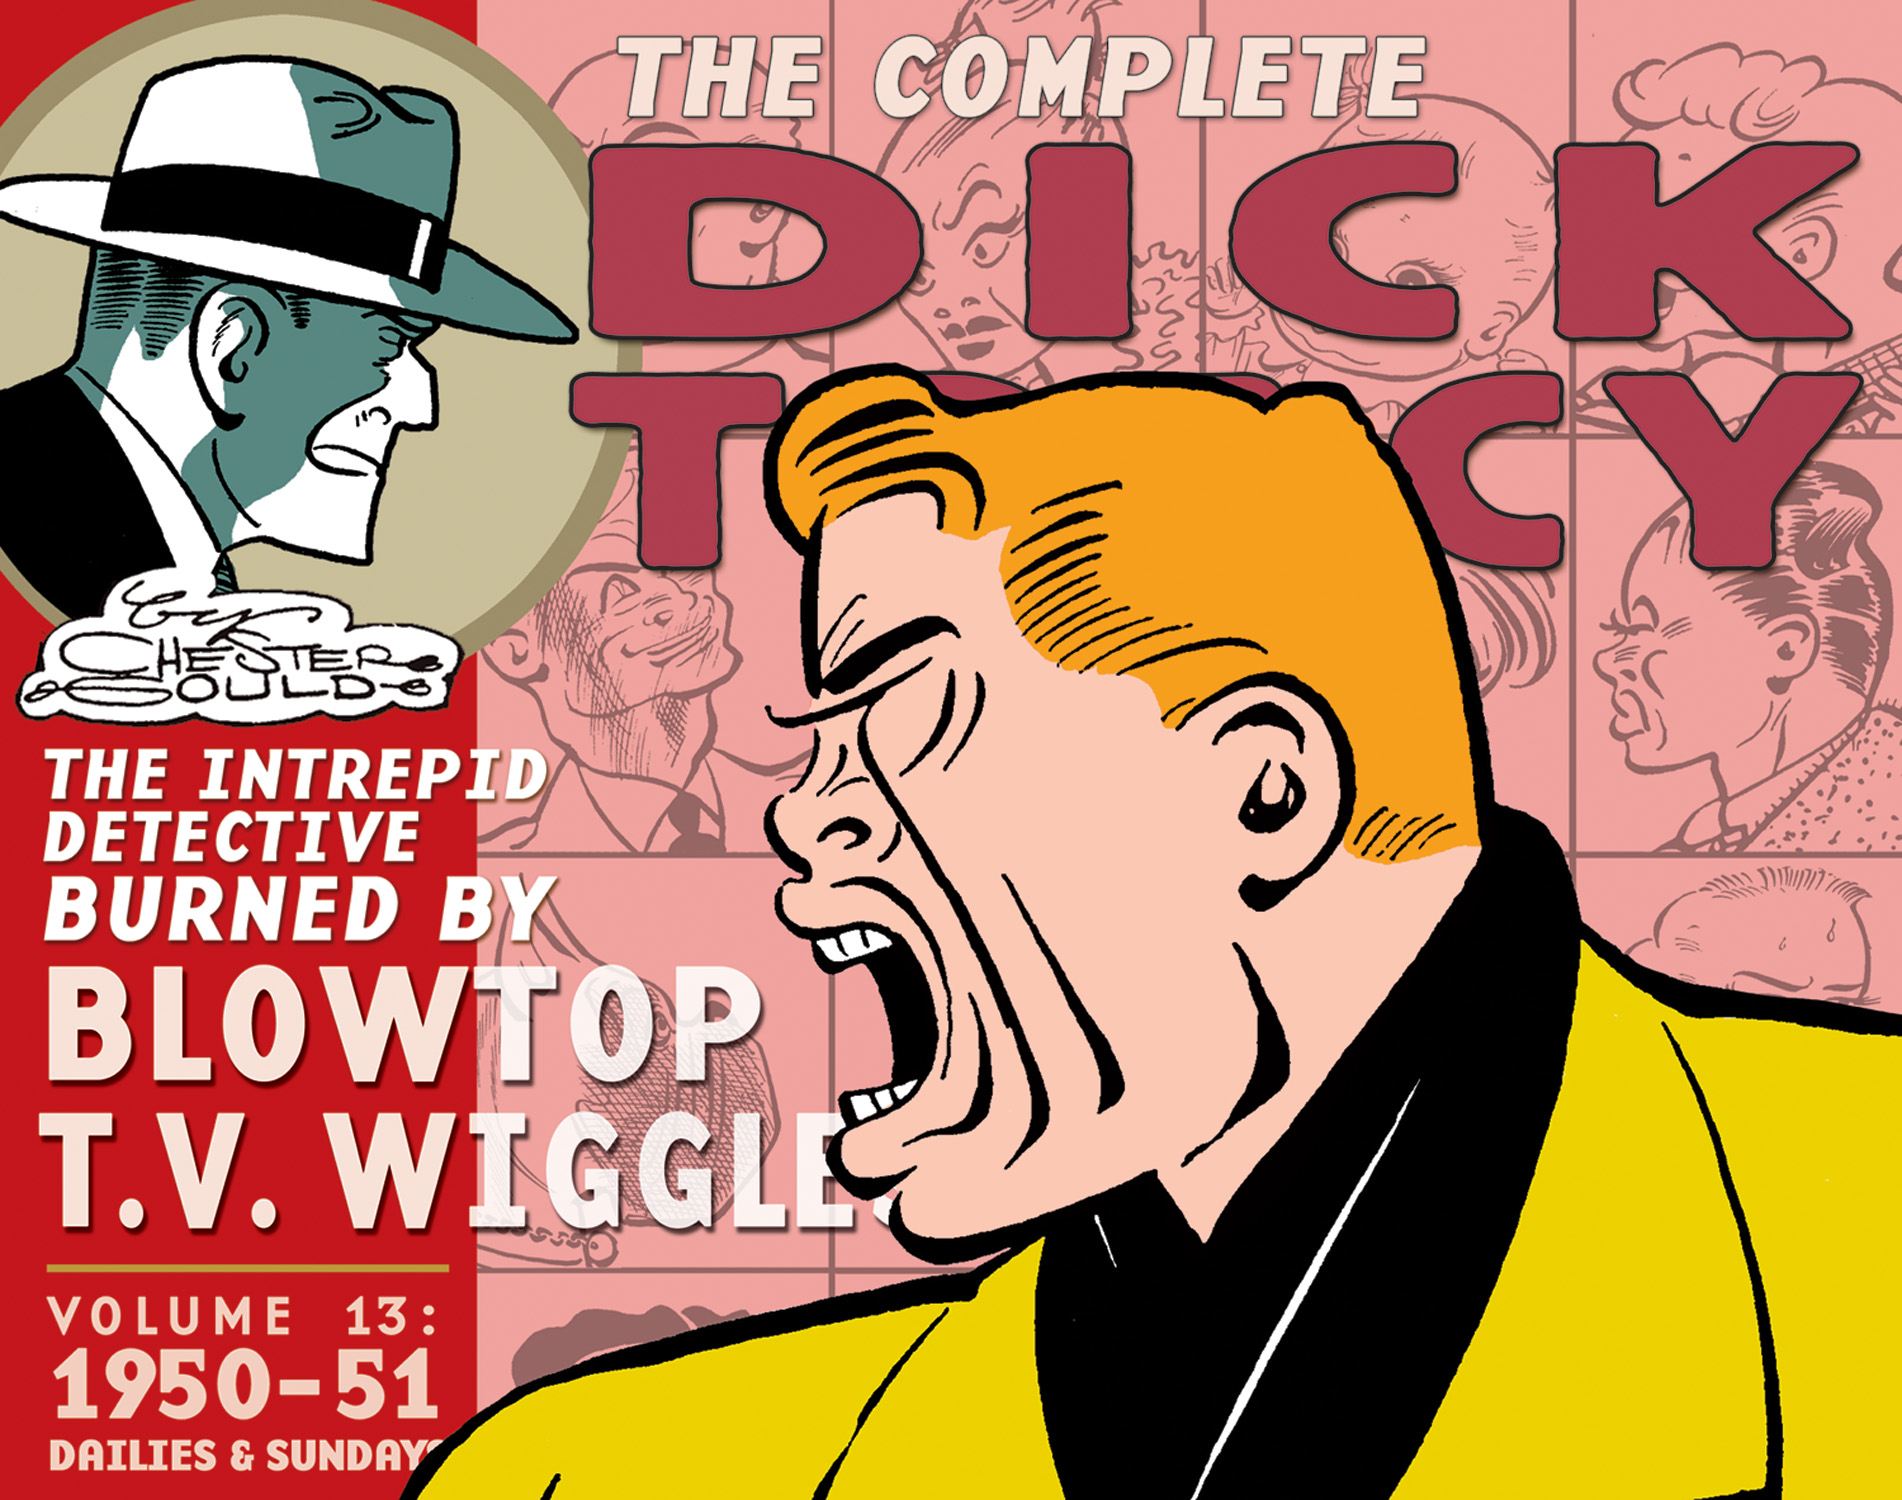 Complete Dick Tracy Vol 13